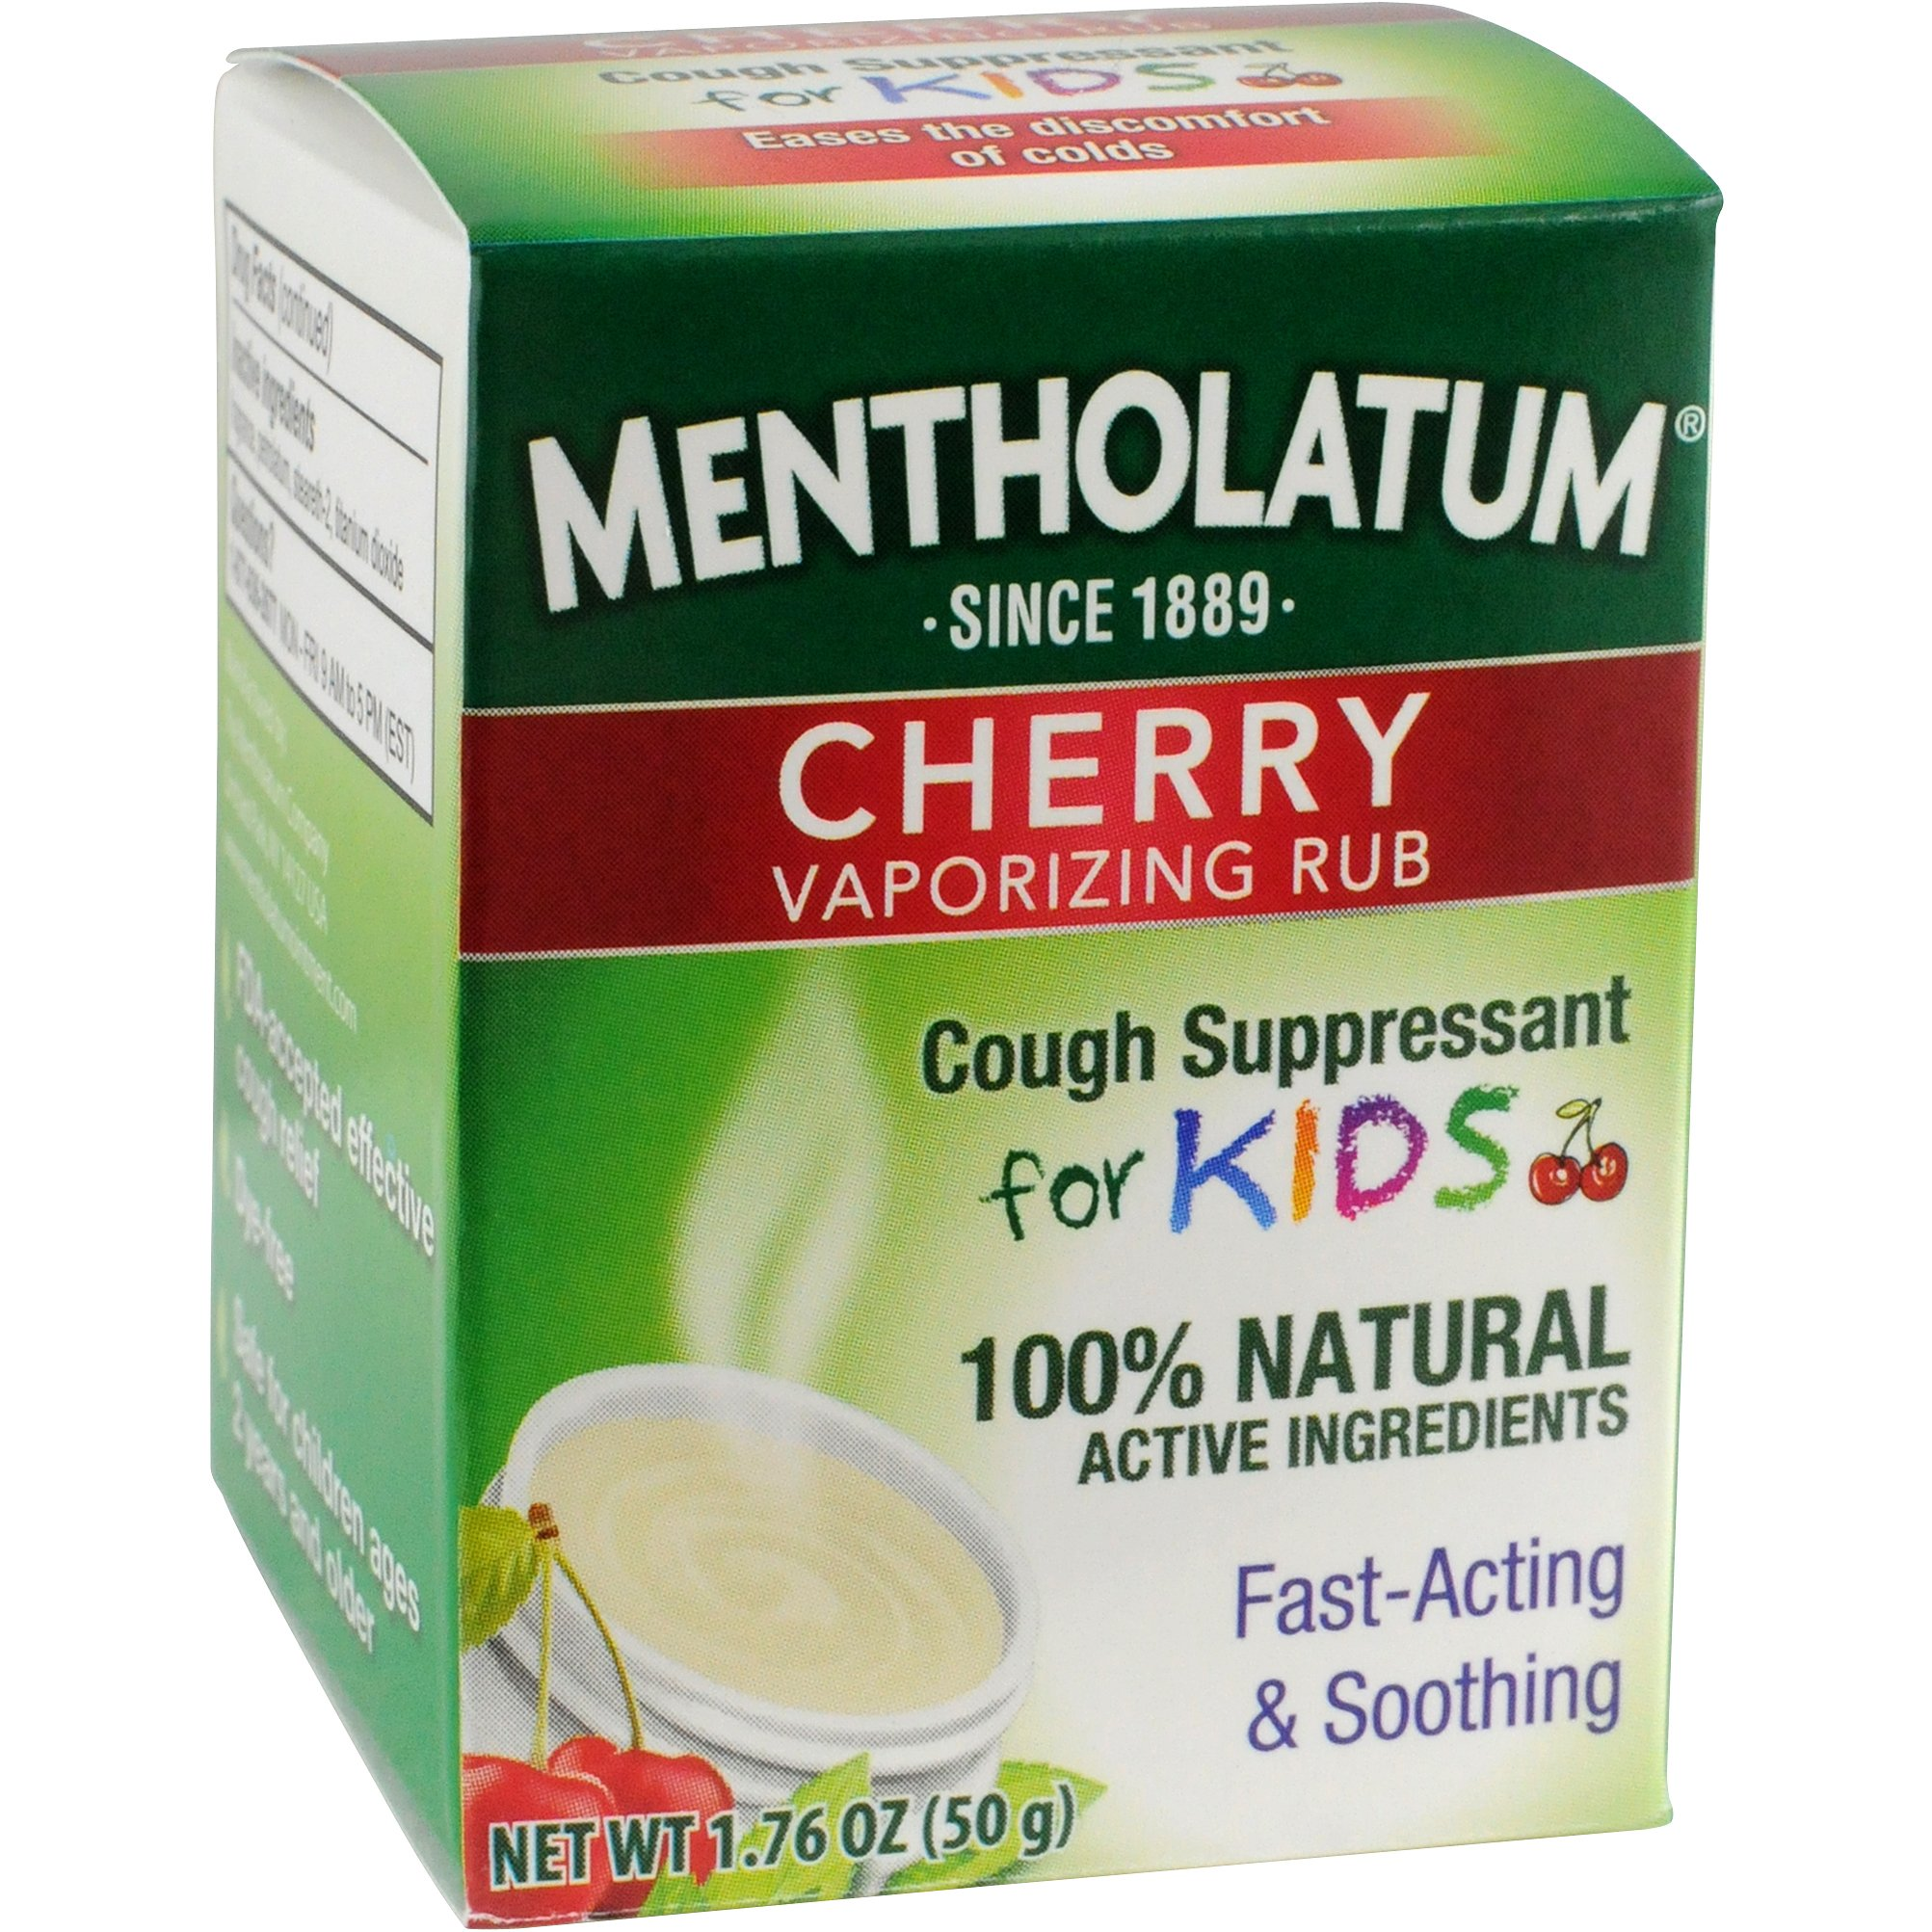 Mentholatum Cherry Vaporizing Rub for Kids, 1.76 oz. (50g) Jar - 100% Natural Active Ingredients for Fast-Acting Cough Relief Pack of 6 by Mentholatum